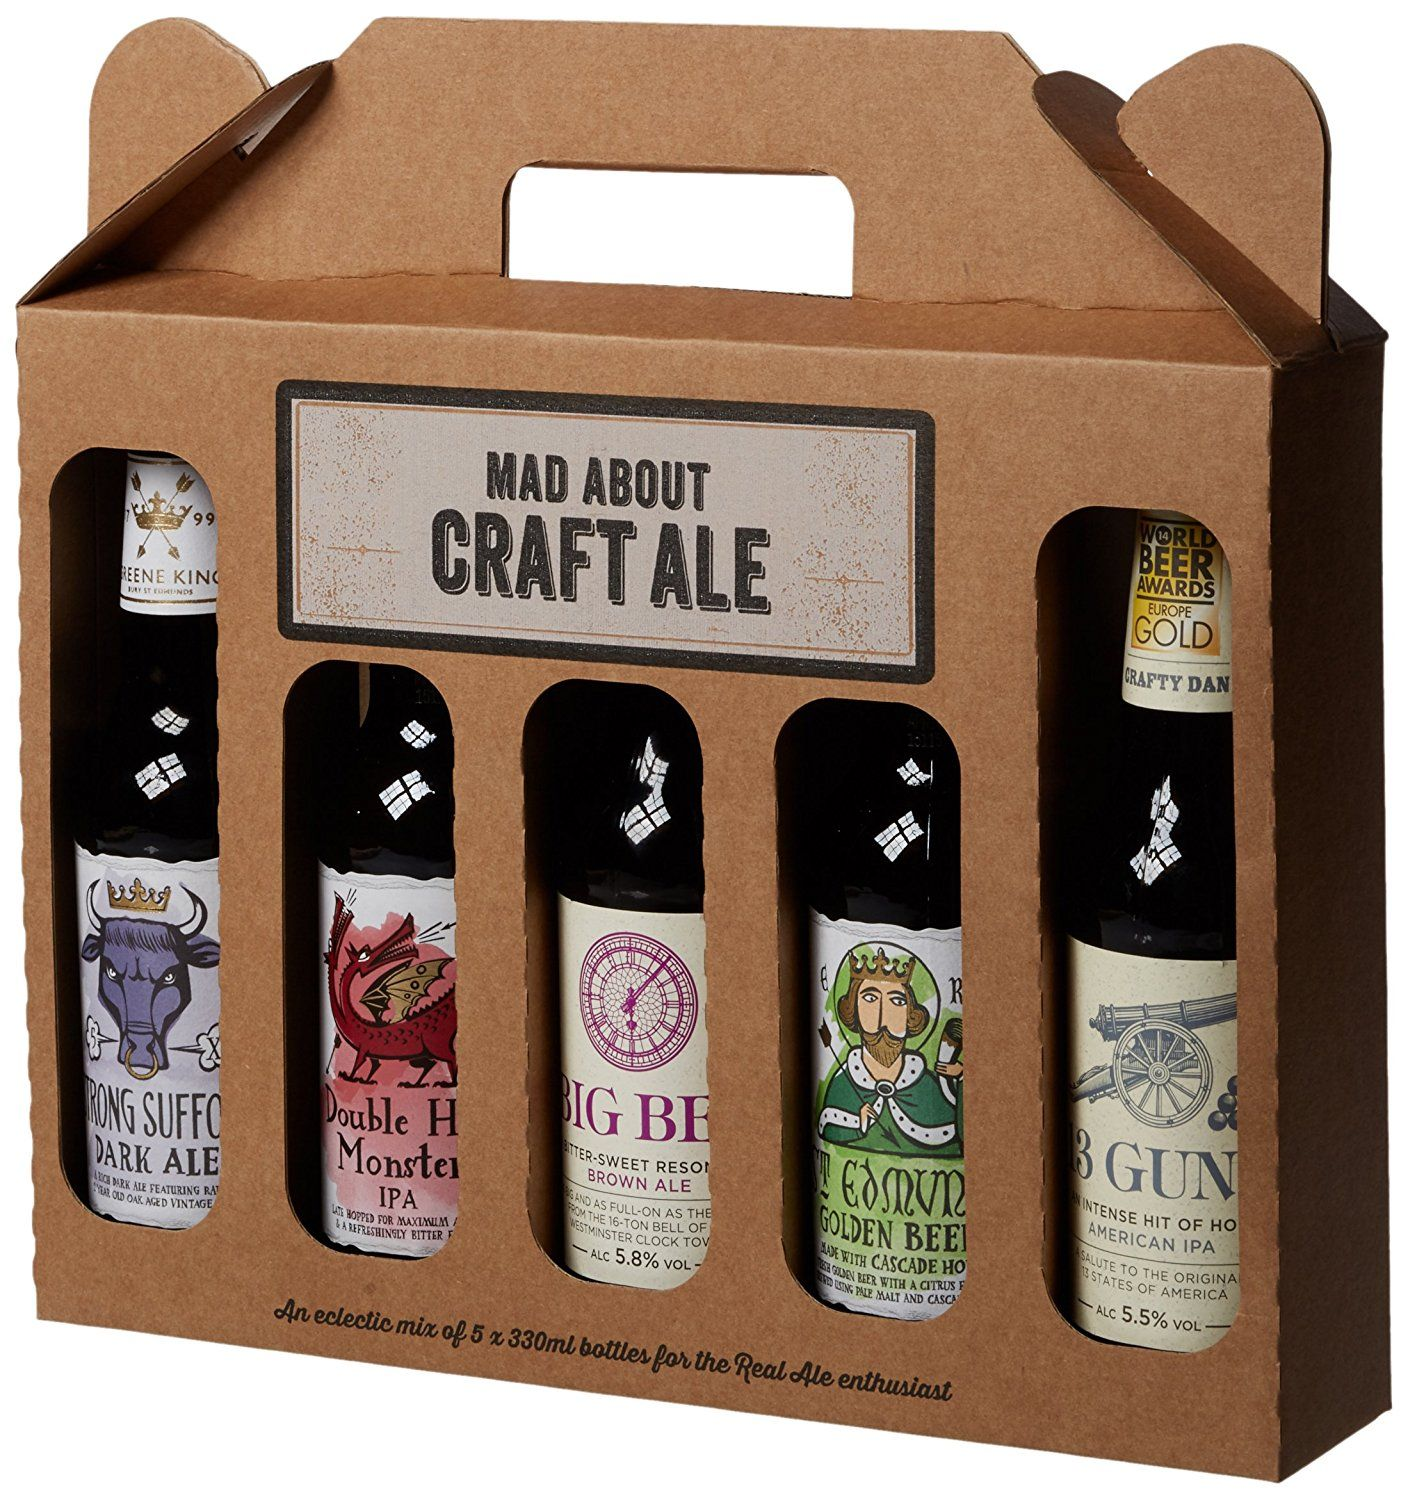 Amazon Co Uk 2016 Cite A Website Cite This For Me Online Available At Https Www Amazon Co Uk Drinks Packaging Design Craft Beer Packaging Craft Ale